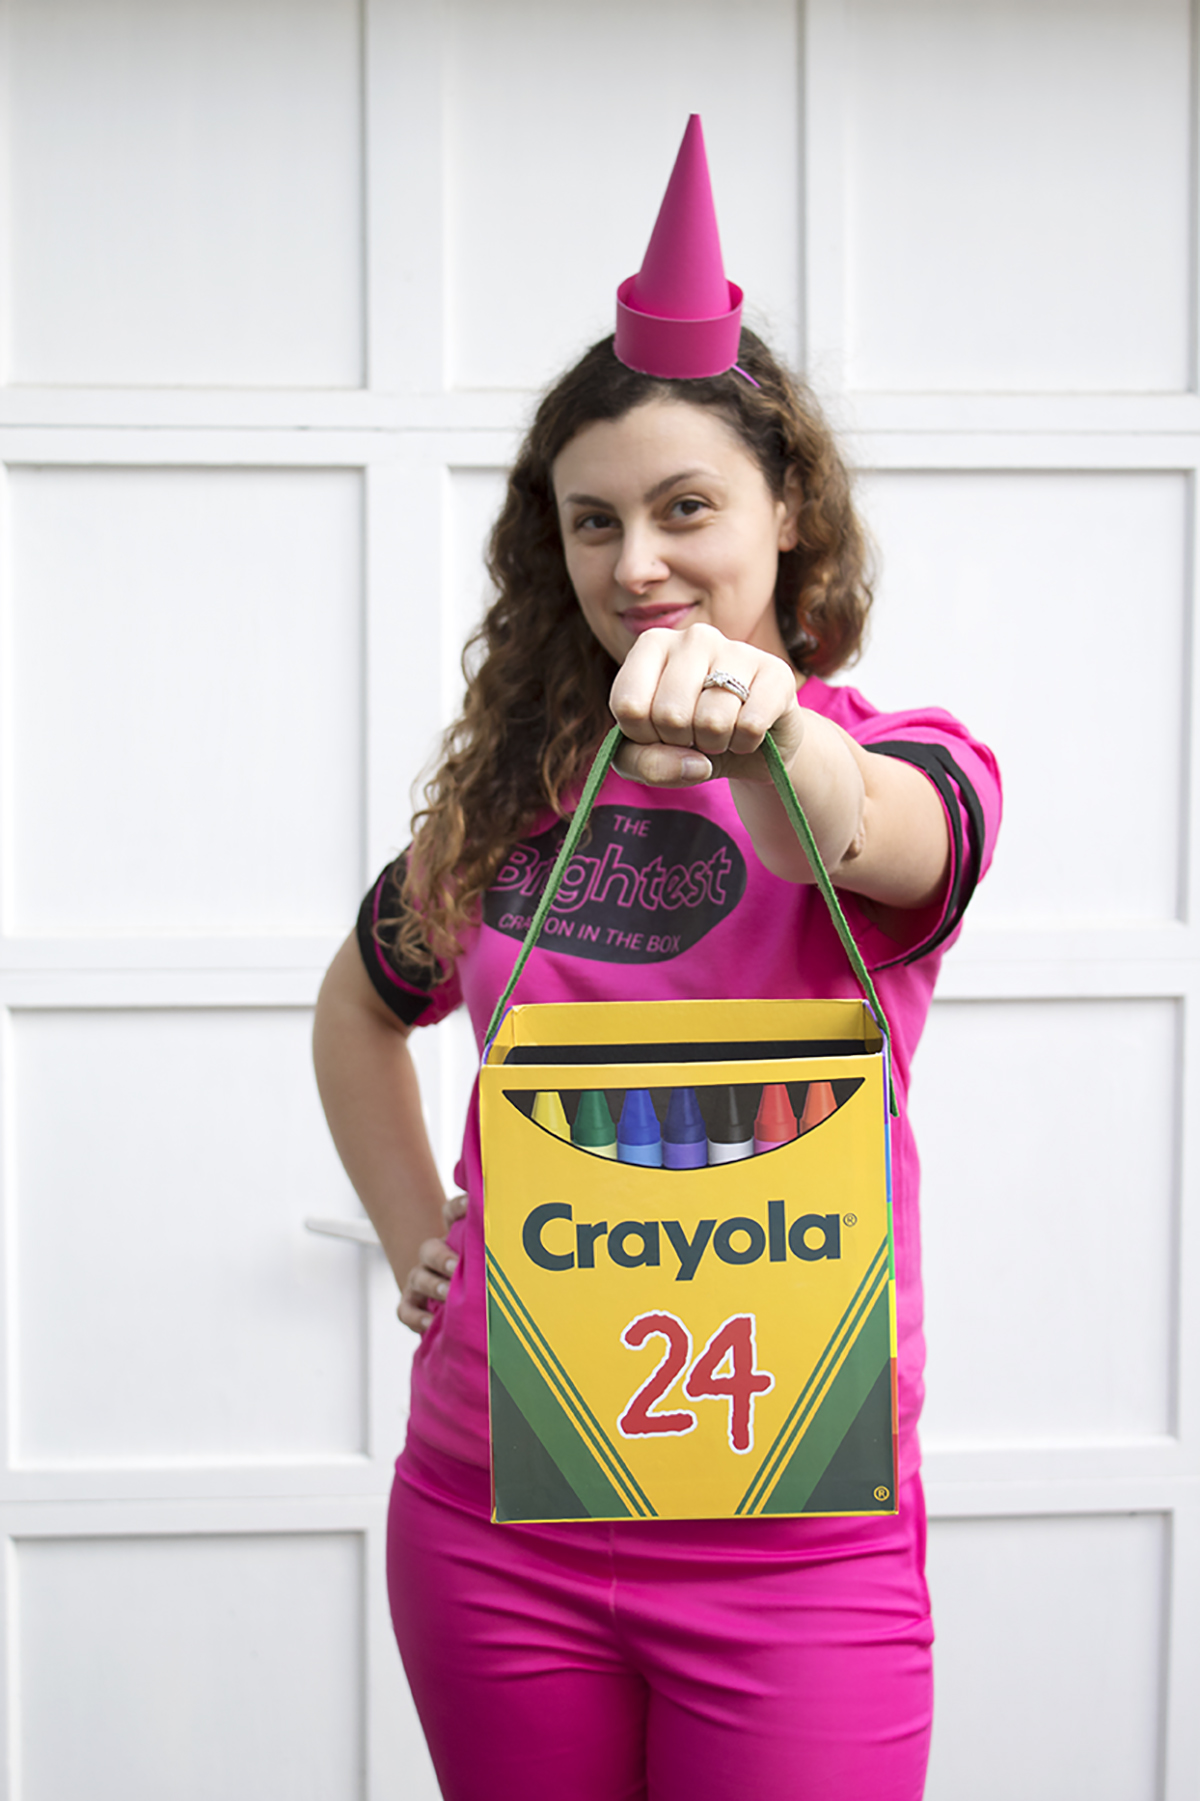 Why be an ordinary crayon when you can be the BRIGHTEST crayon in the box?! Check out this DIY costume project, and download the free printable so that you can be the brightest crayon too! Click for the full DIY.  #crayoncostume #lastminutecostume #groupcostume #diycostume